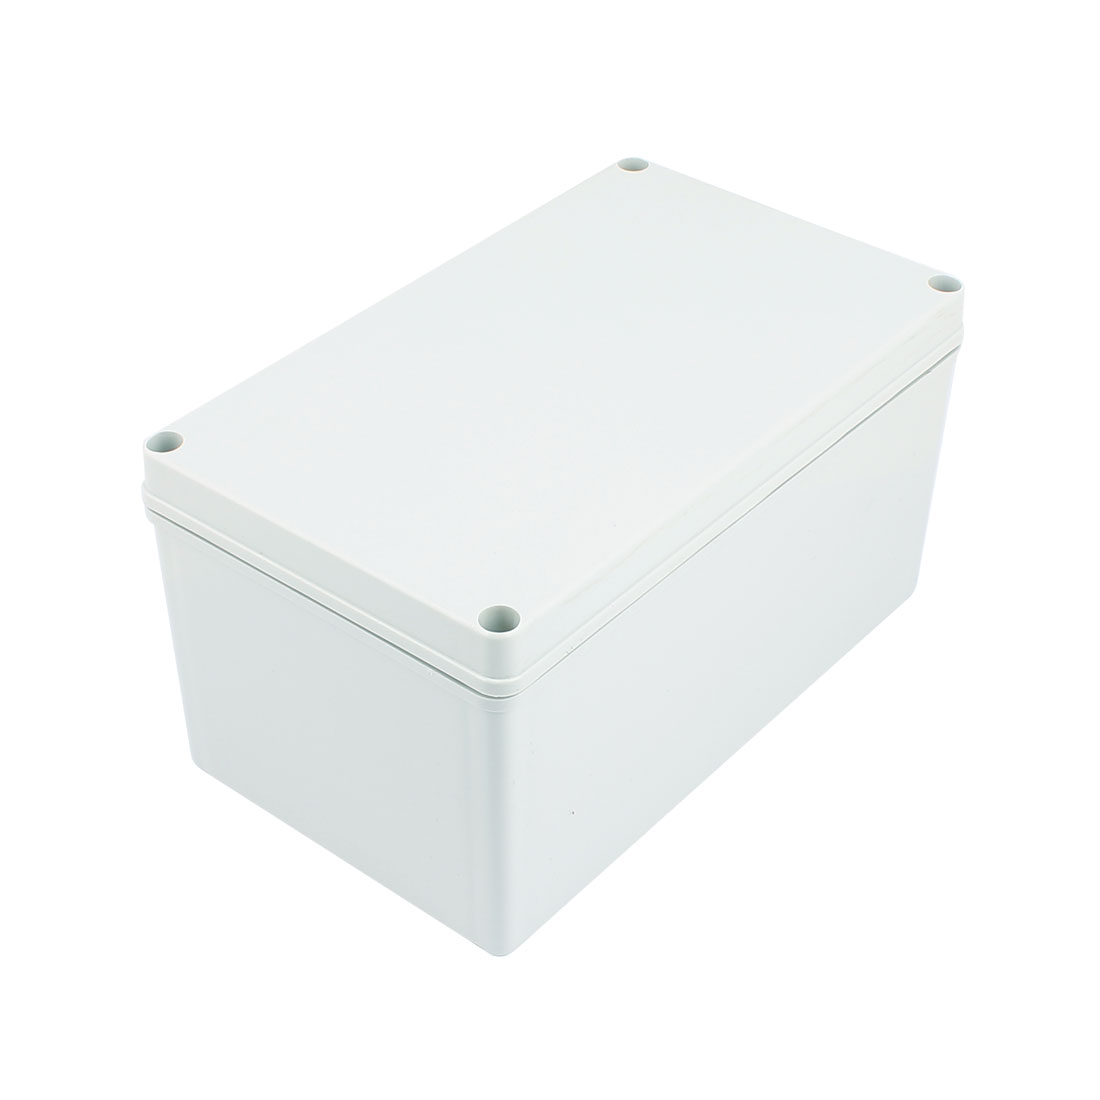 Dustproof IP65 Junction Box DIY Terminal Connection Enclosure Adaptable 242mm x142mm x 122mm